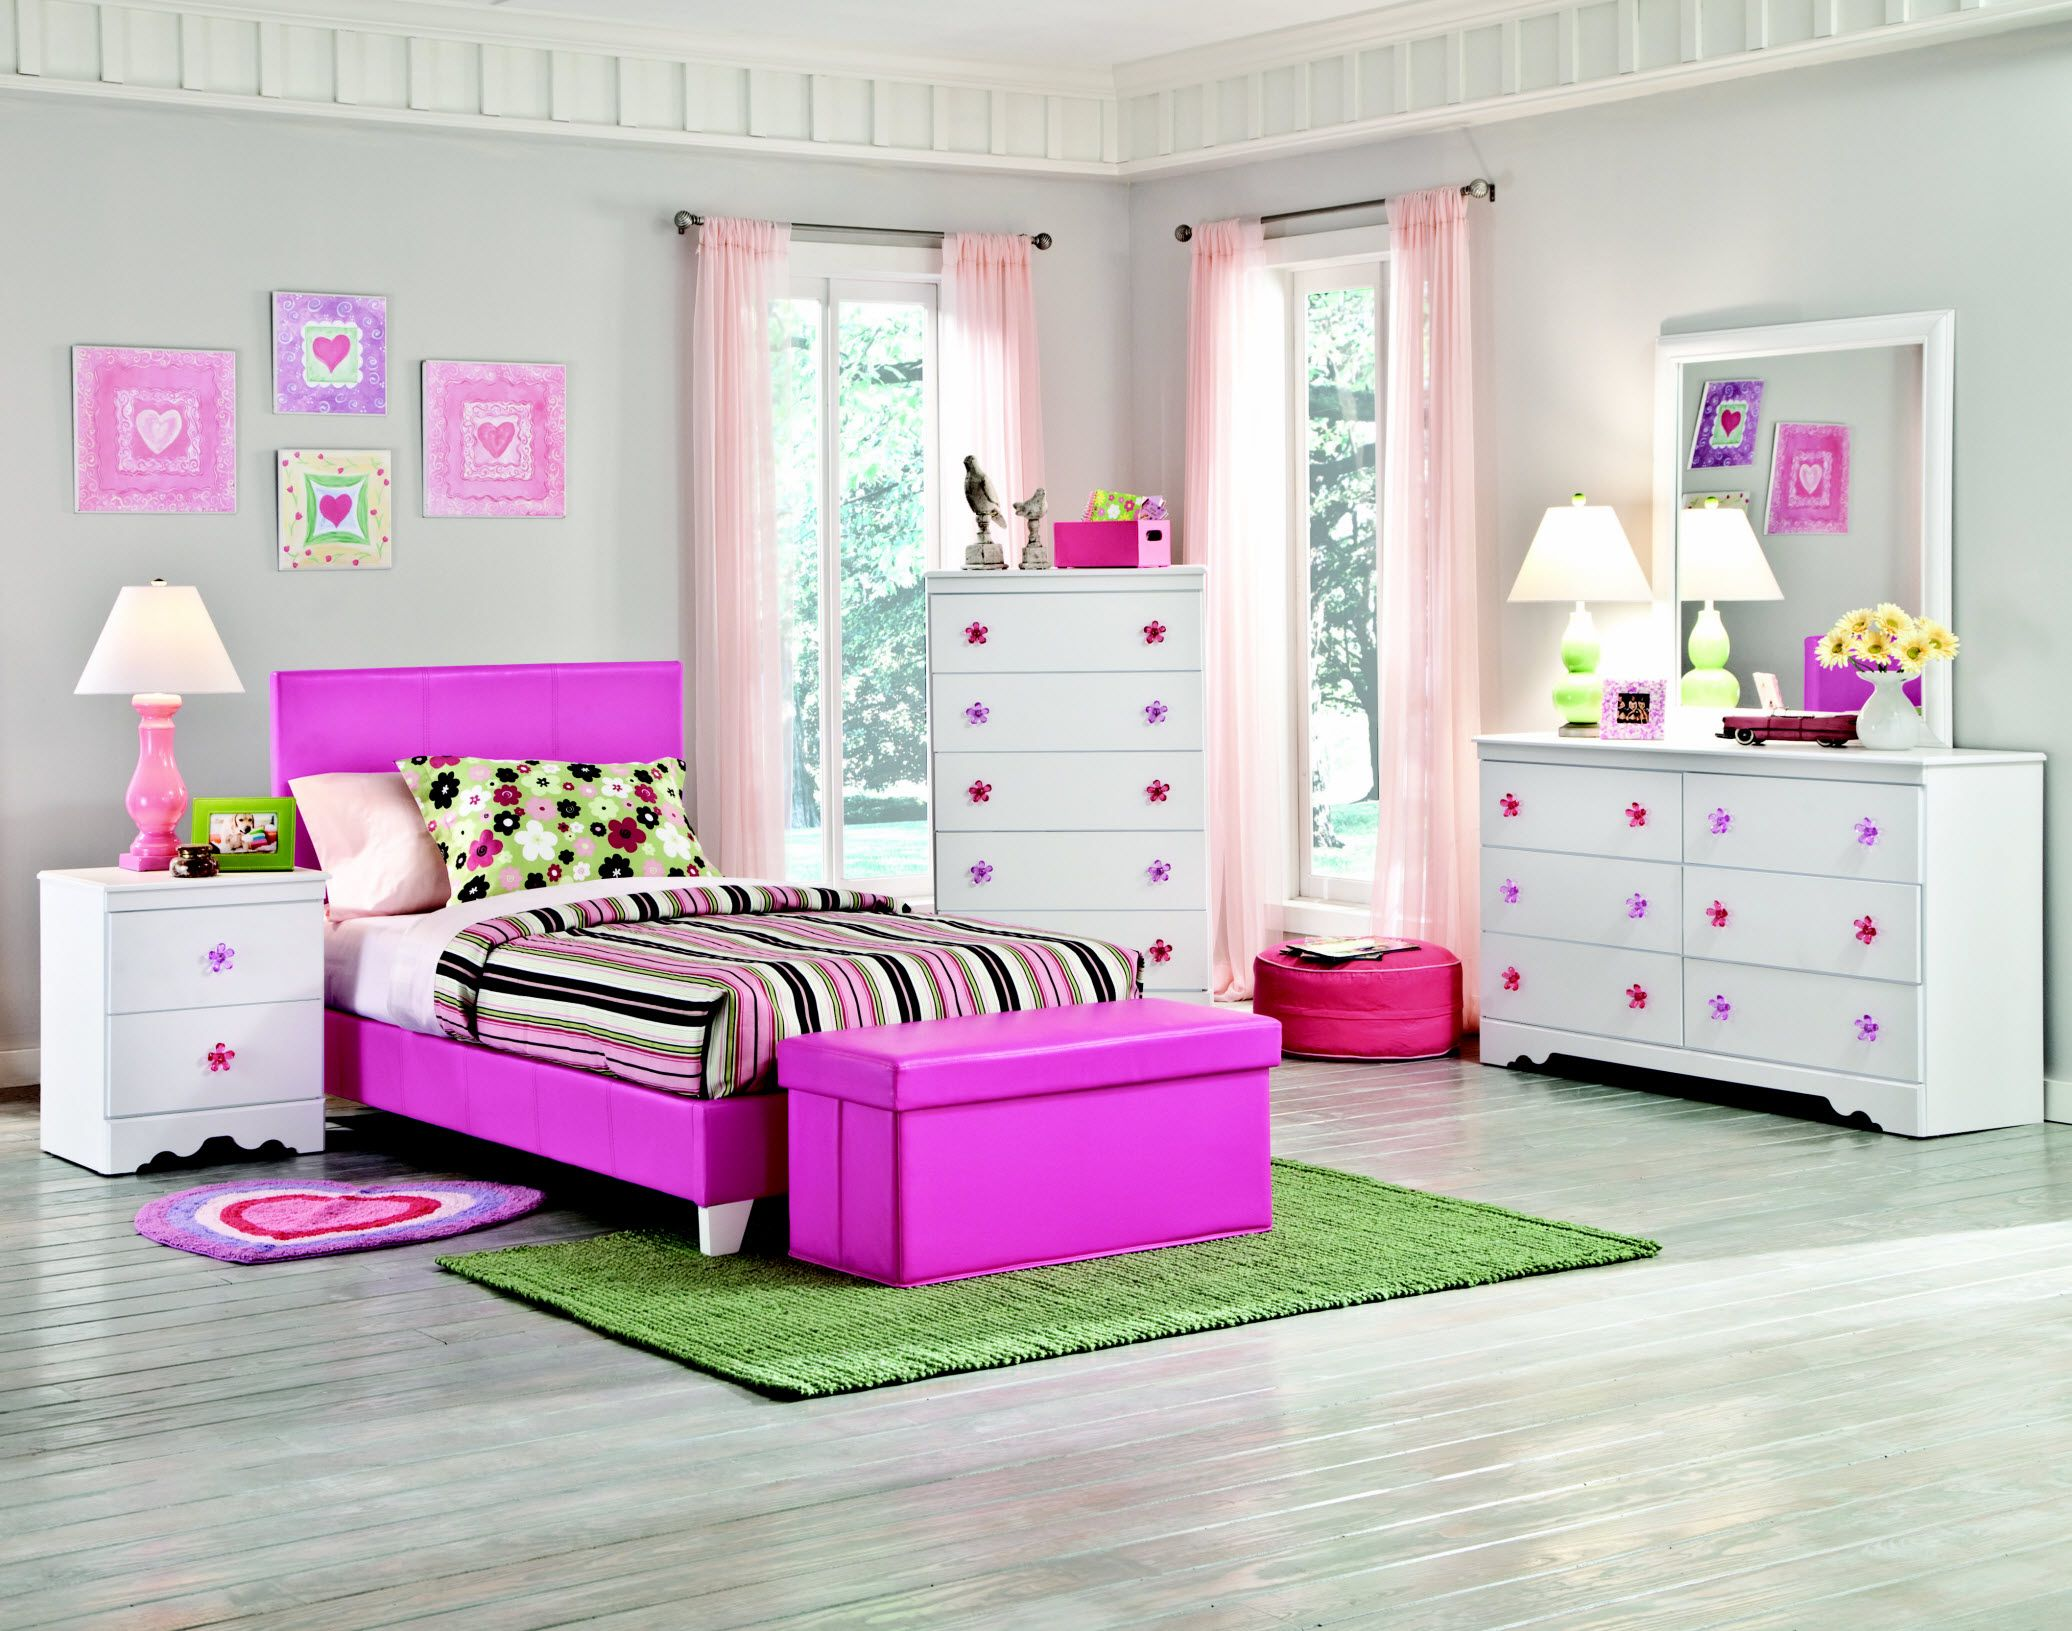 Bedroom ideas for girls purple - Design Ideas For Modern Gray Girls Bedroom With Cute Purple Wood Bed Frame That Have Line